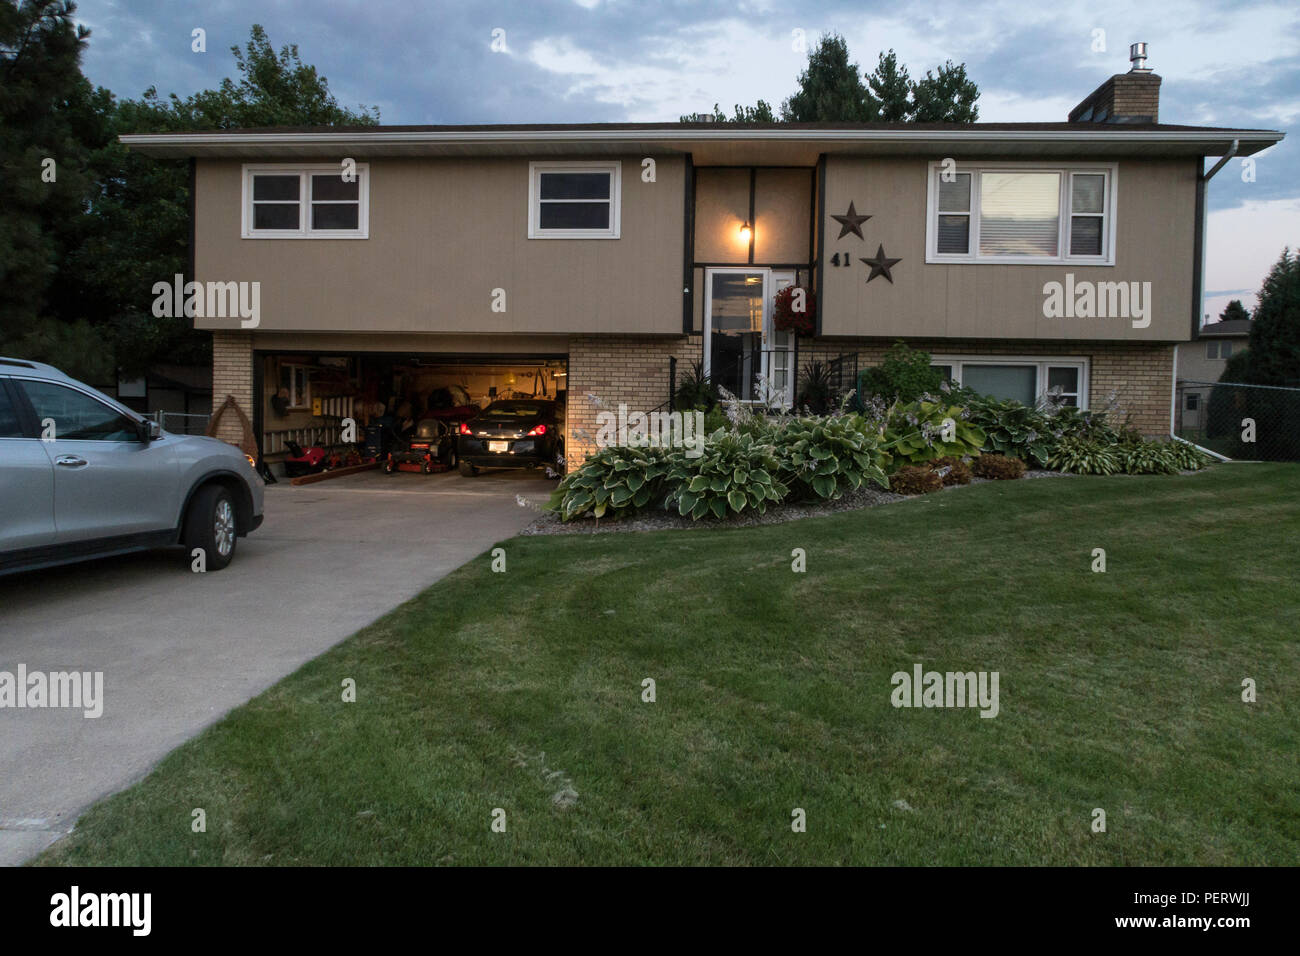 Residential House Exterior in Middle Class Neighborhood, MT, USA Stock Photo